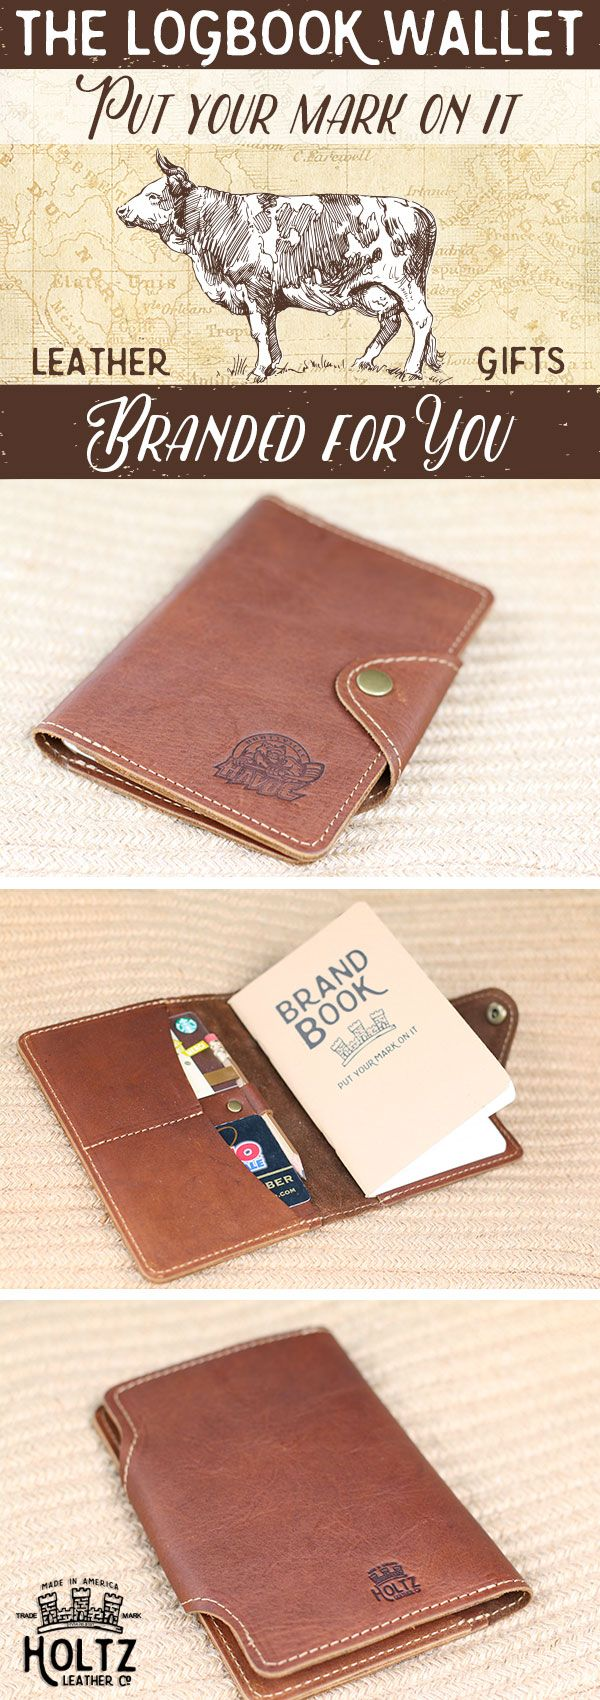 The Logbook Fine Leather Field Notes Wallet is a unique and timeless item! It is handmade right here in our shop with the finest of Full Grain American leathers. Branded with your company logo this wallet makes a great corporate gift or promotional item. !